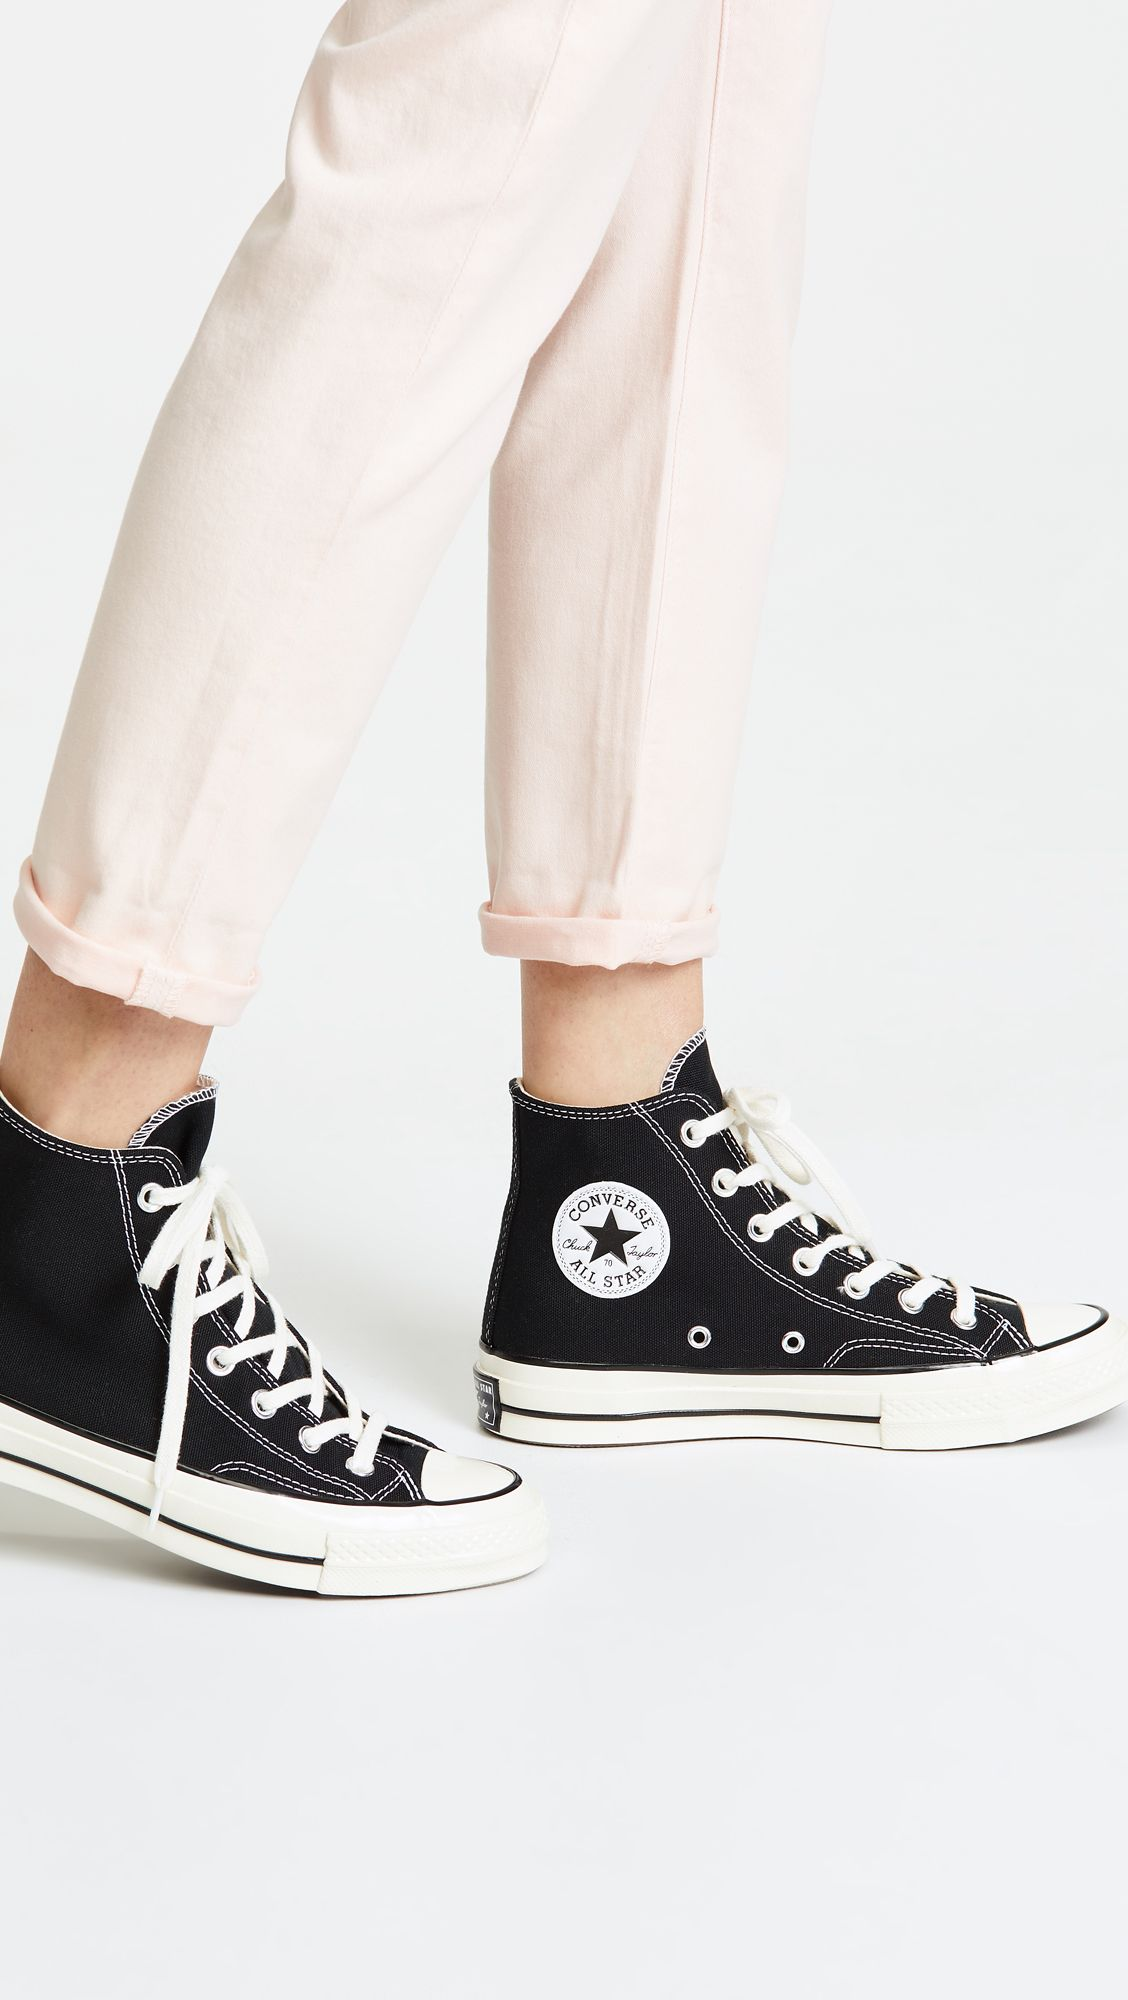 High top sneakers, Converse 70s